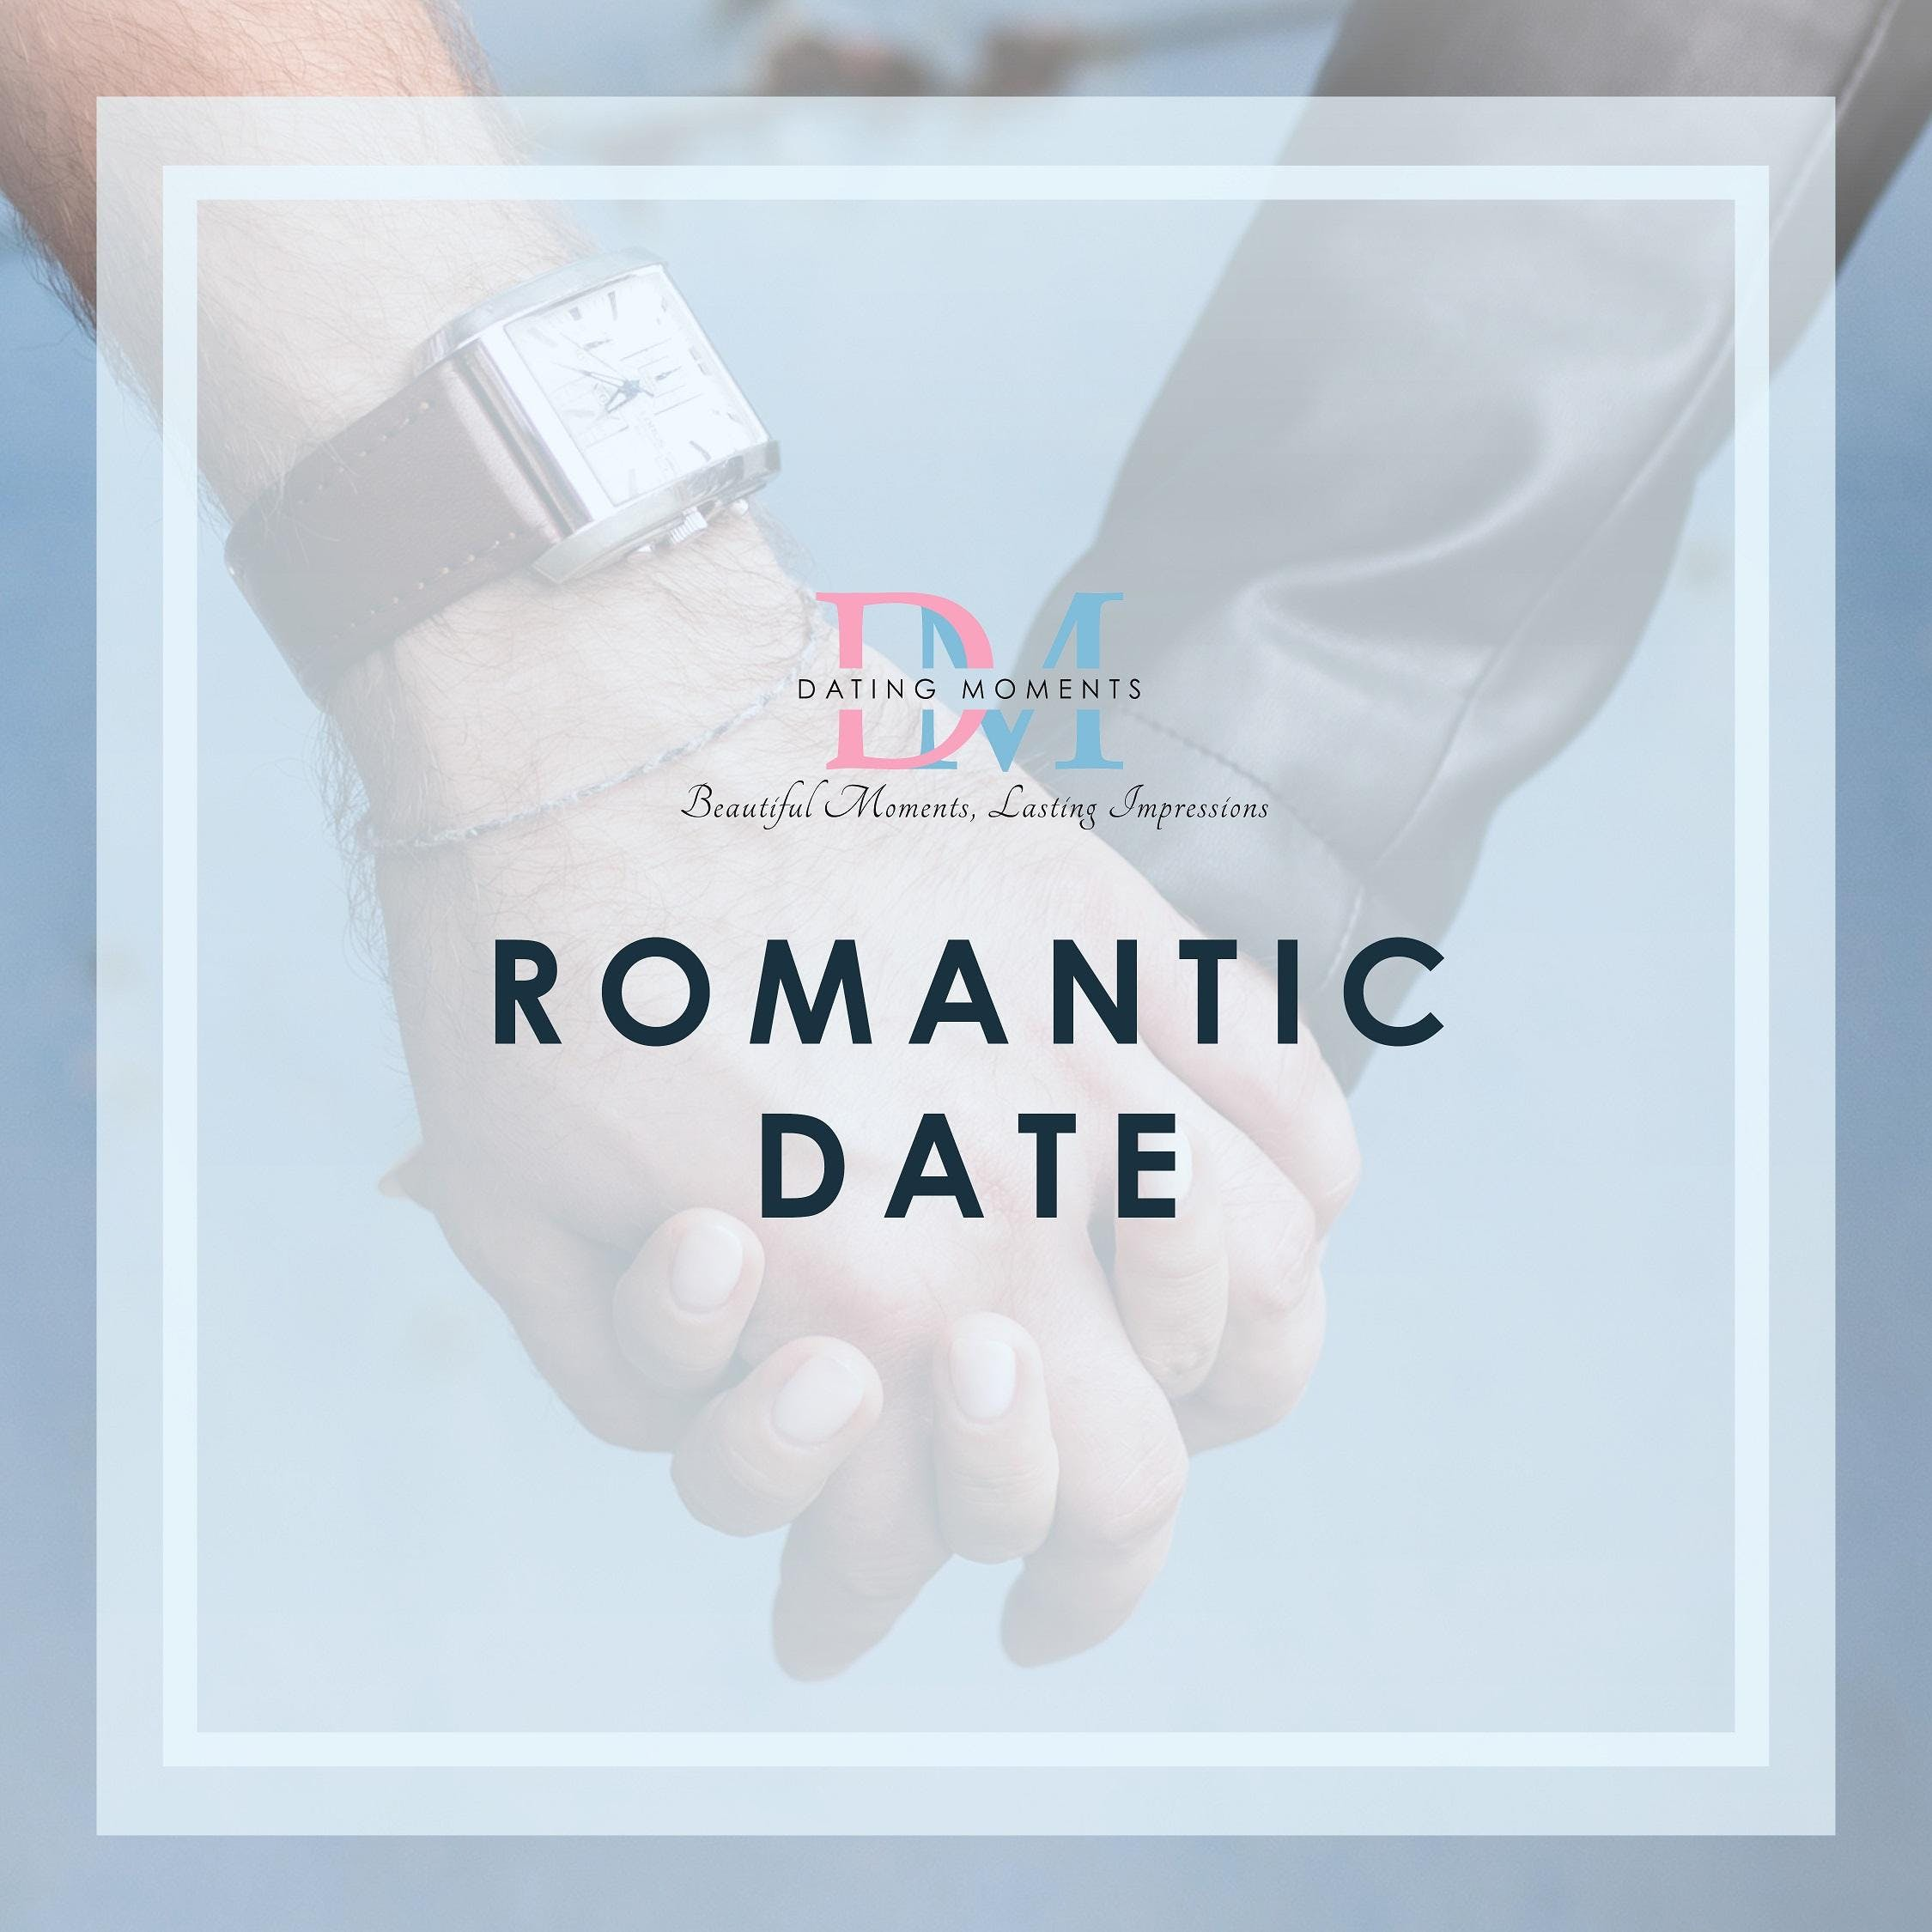 Dating moments singapore